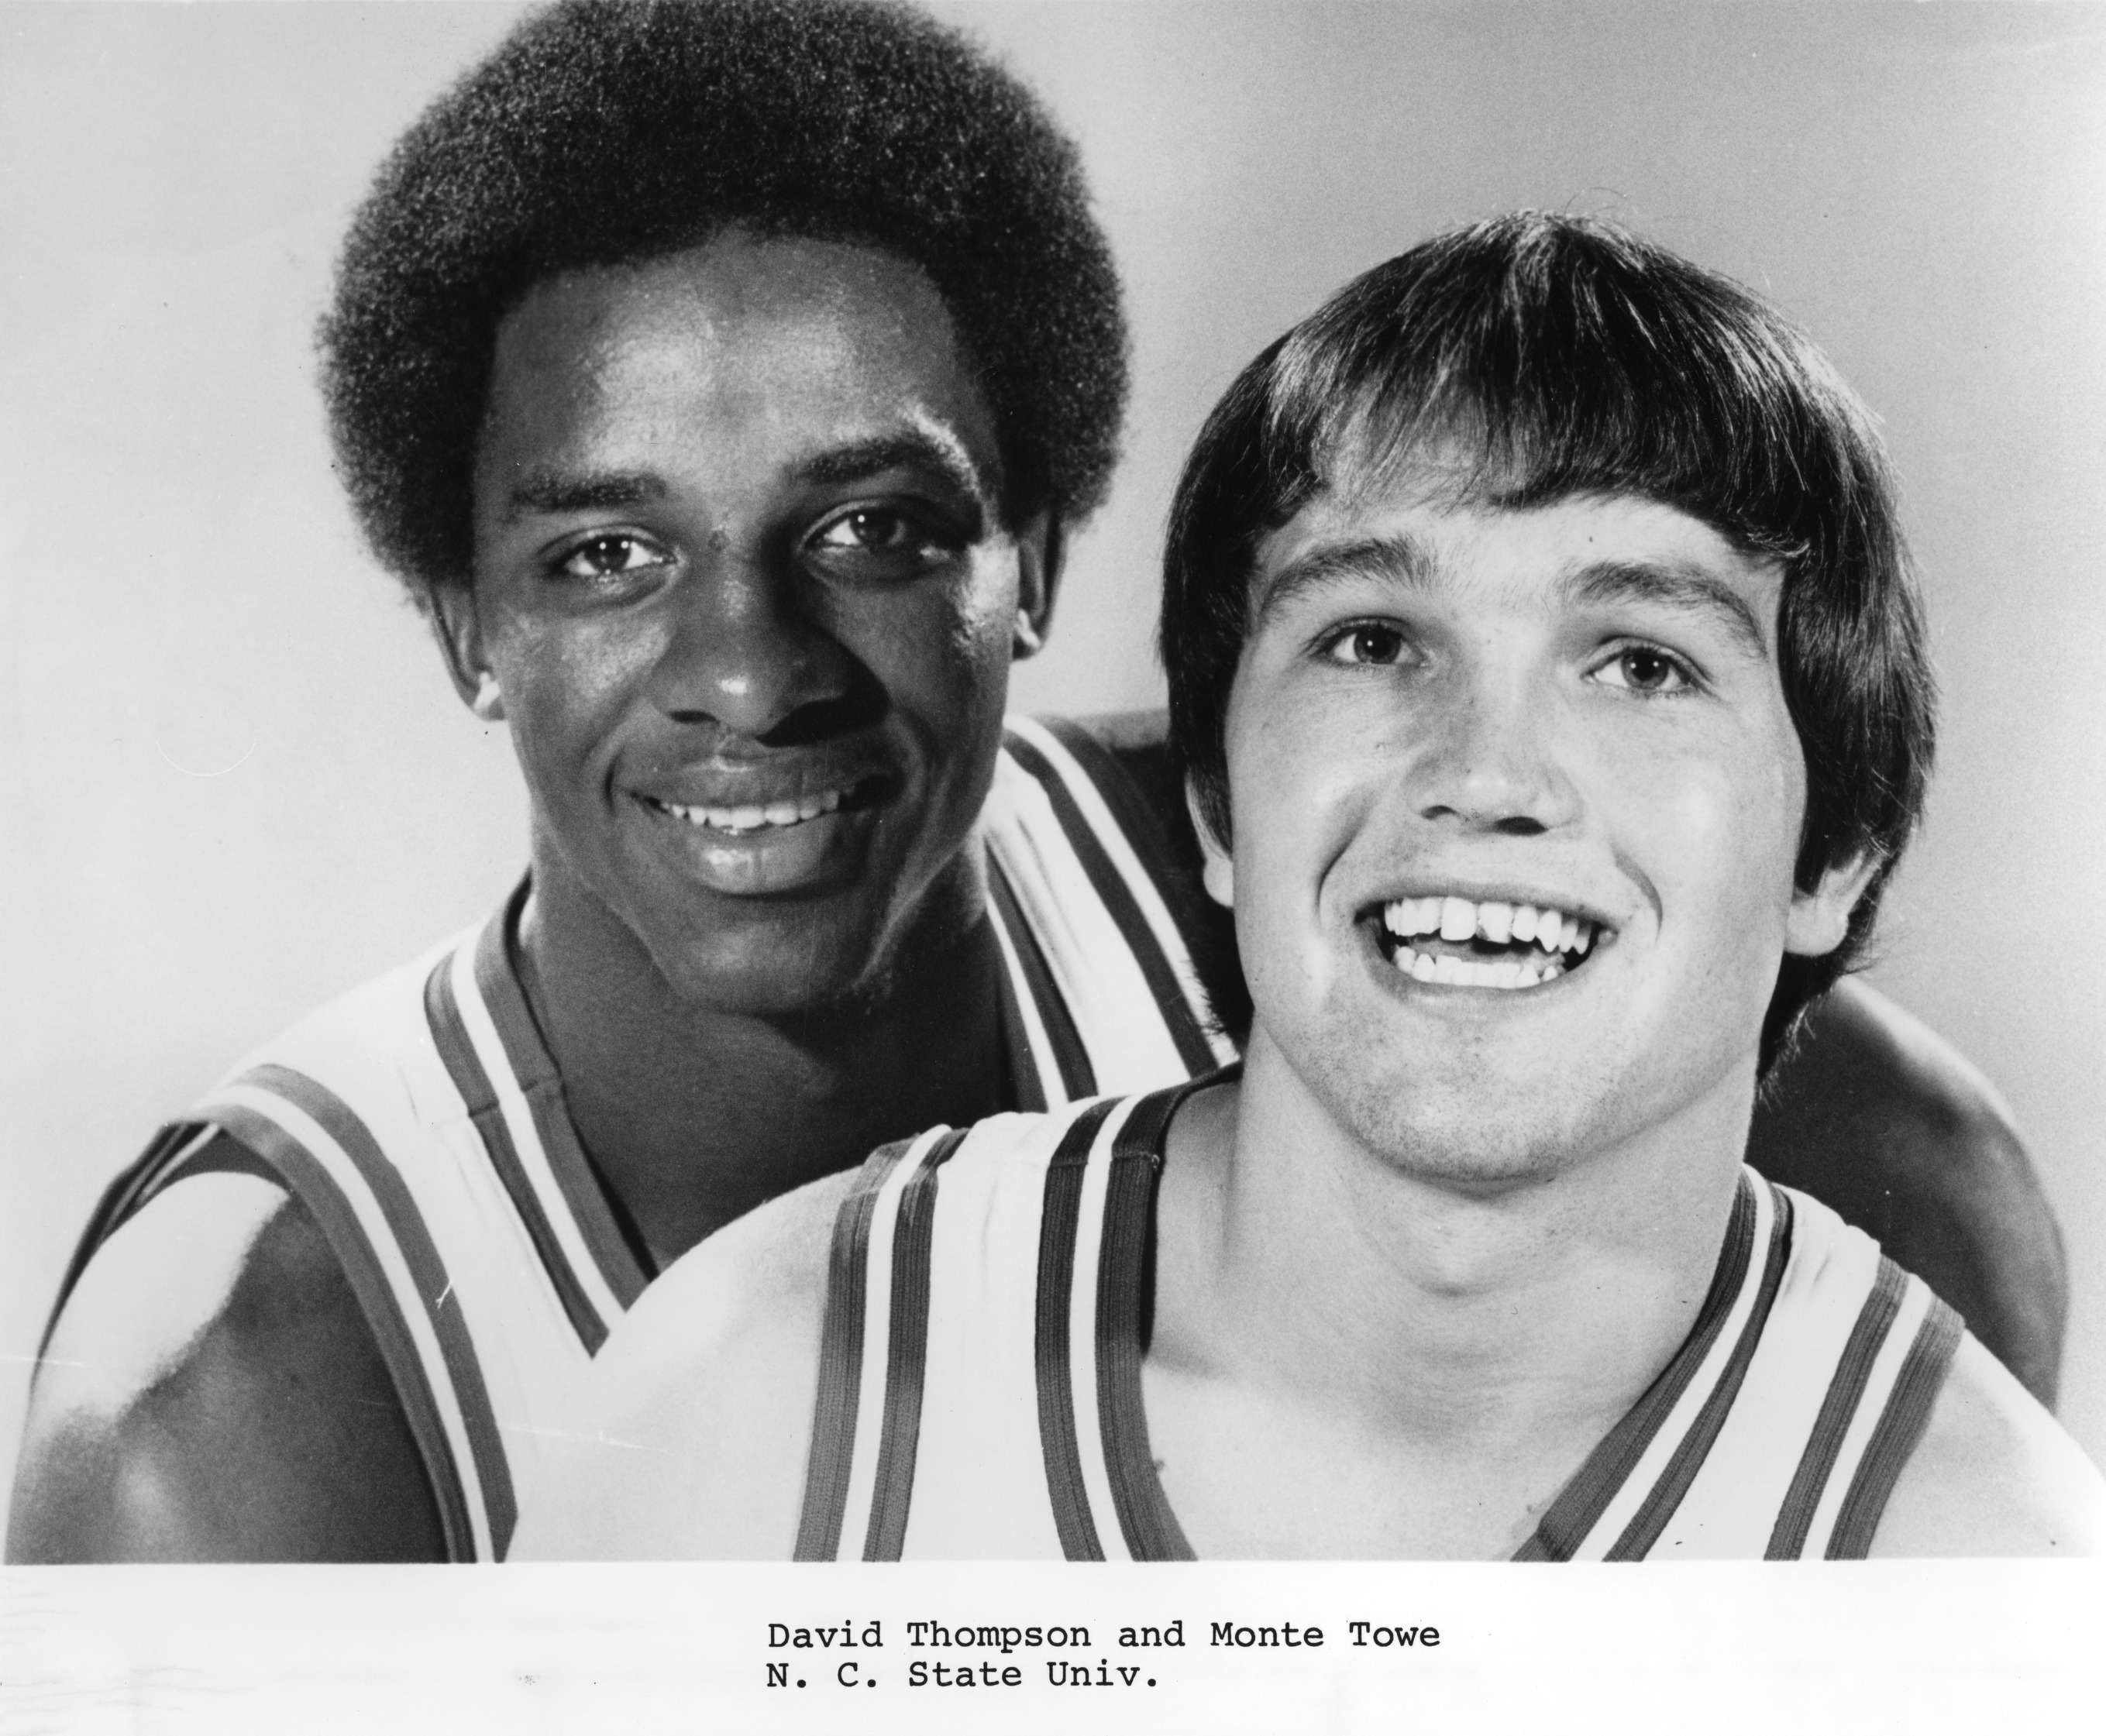 David Thompson and Monte Towe, N.C. State University basketball